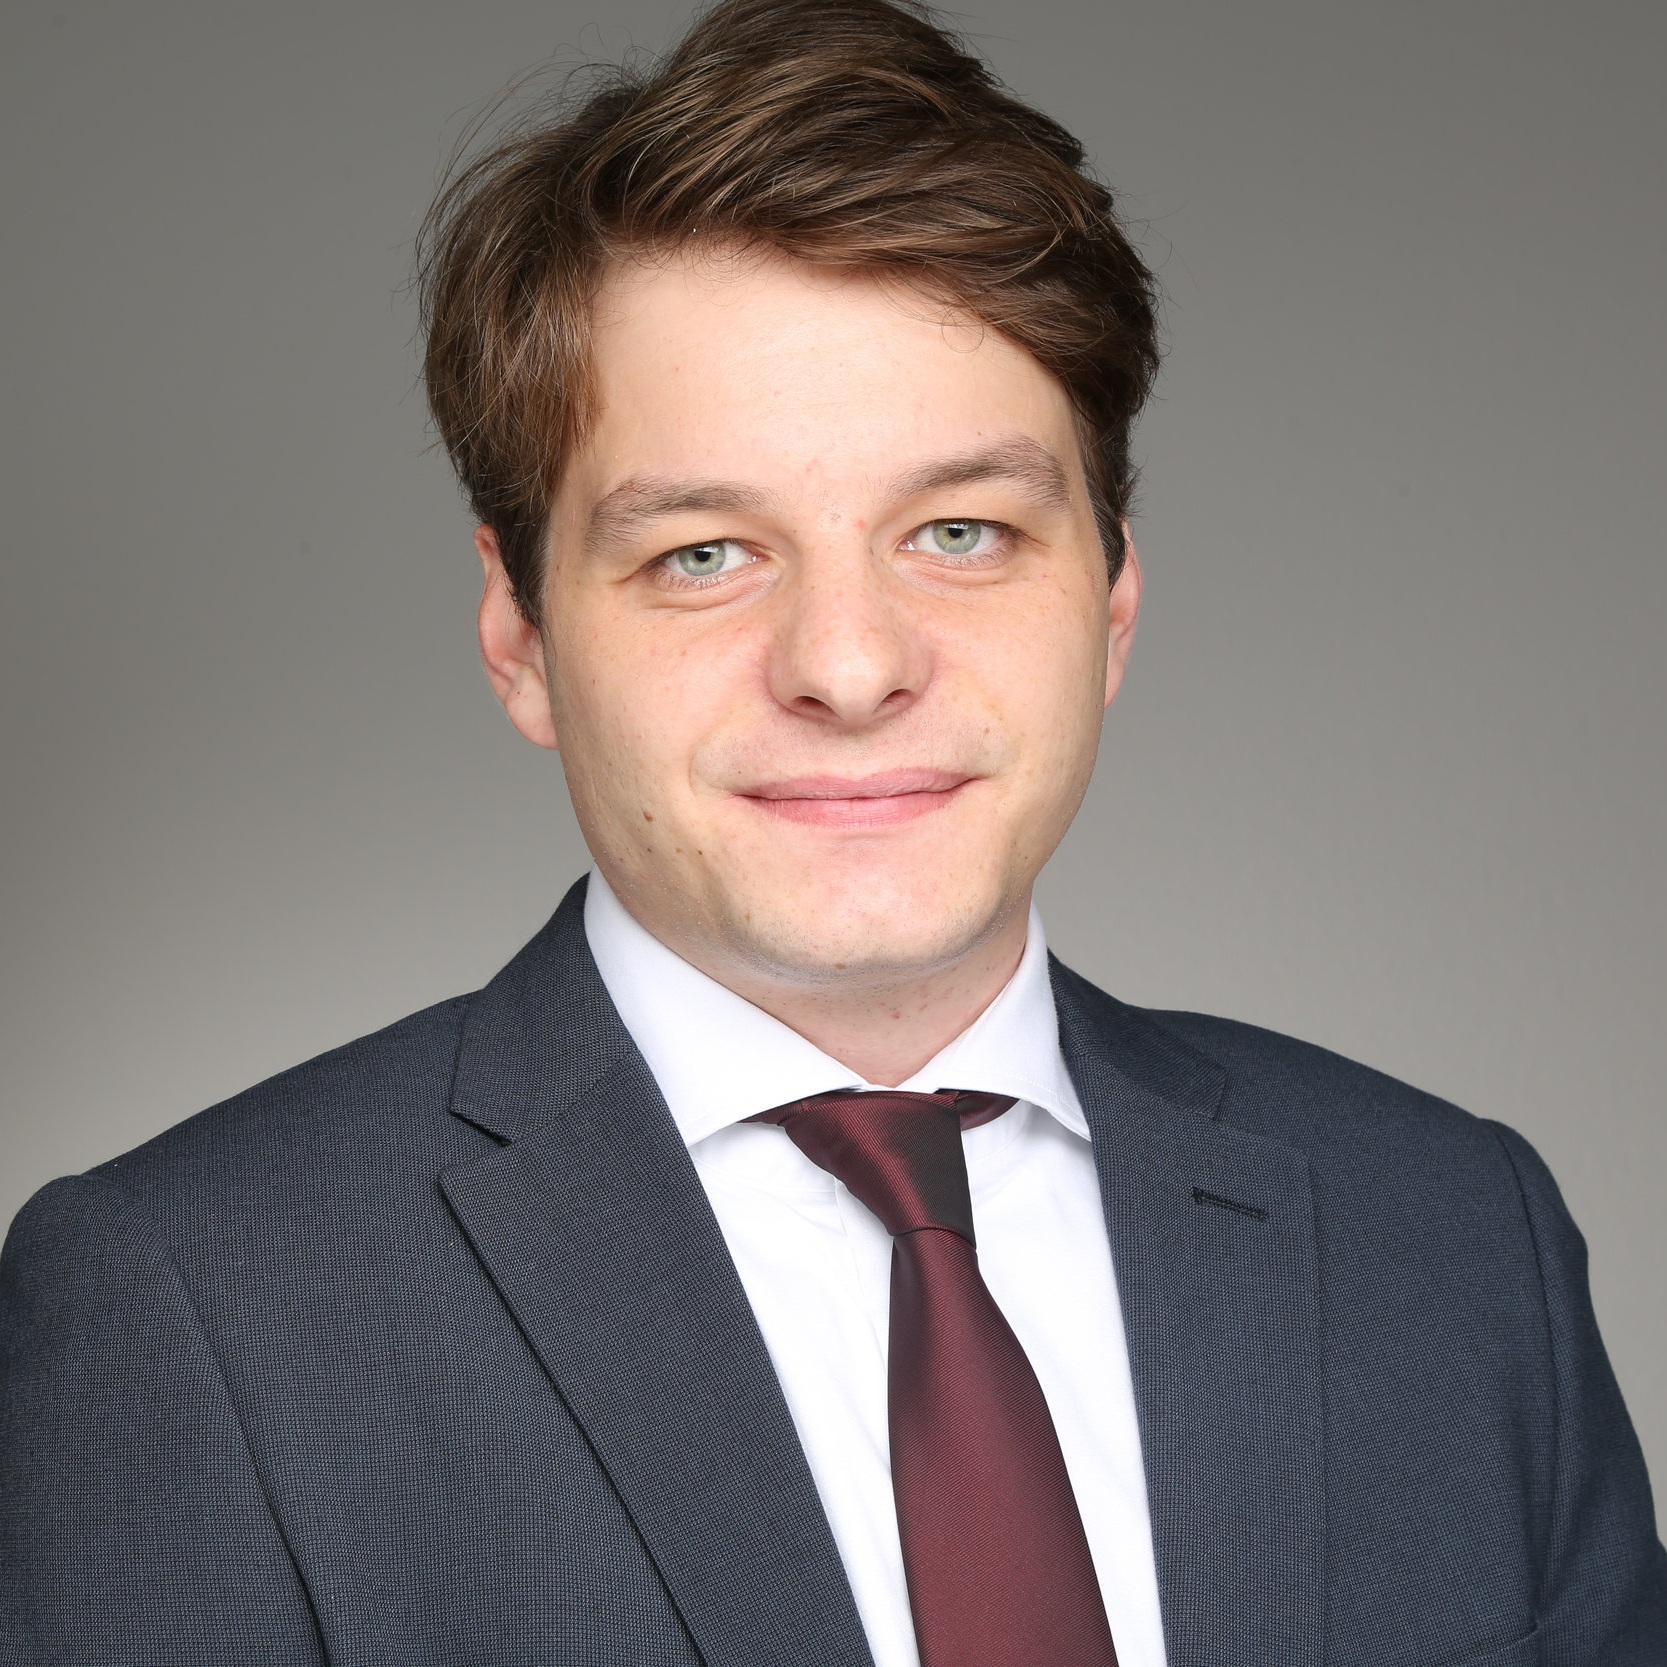 Philipp Schulden   Philipp Schulden works as a blockchain expert at the Frankfurt School Blockchain Center. In the blockchain environment, he gained valuable experience in the project planning and conception of blockchain projects at a German energy company. He also has expertise in the area of crypto currency analysis. He completed his studies in International Business Administration and a Master in Management in Frankfurt, Moscow, Lima and Seoul.